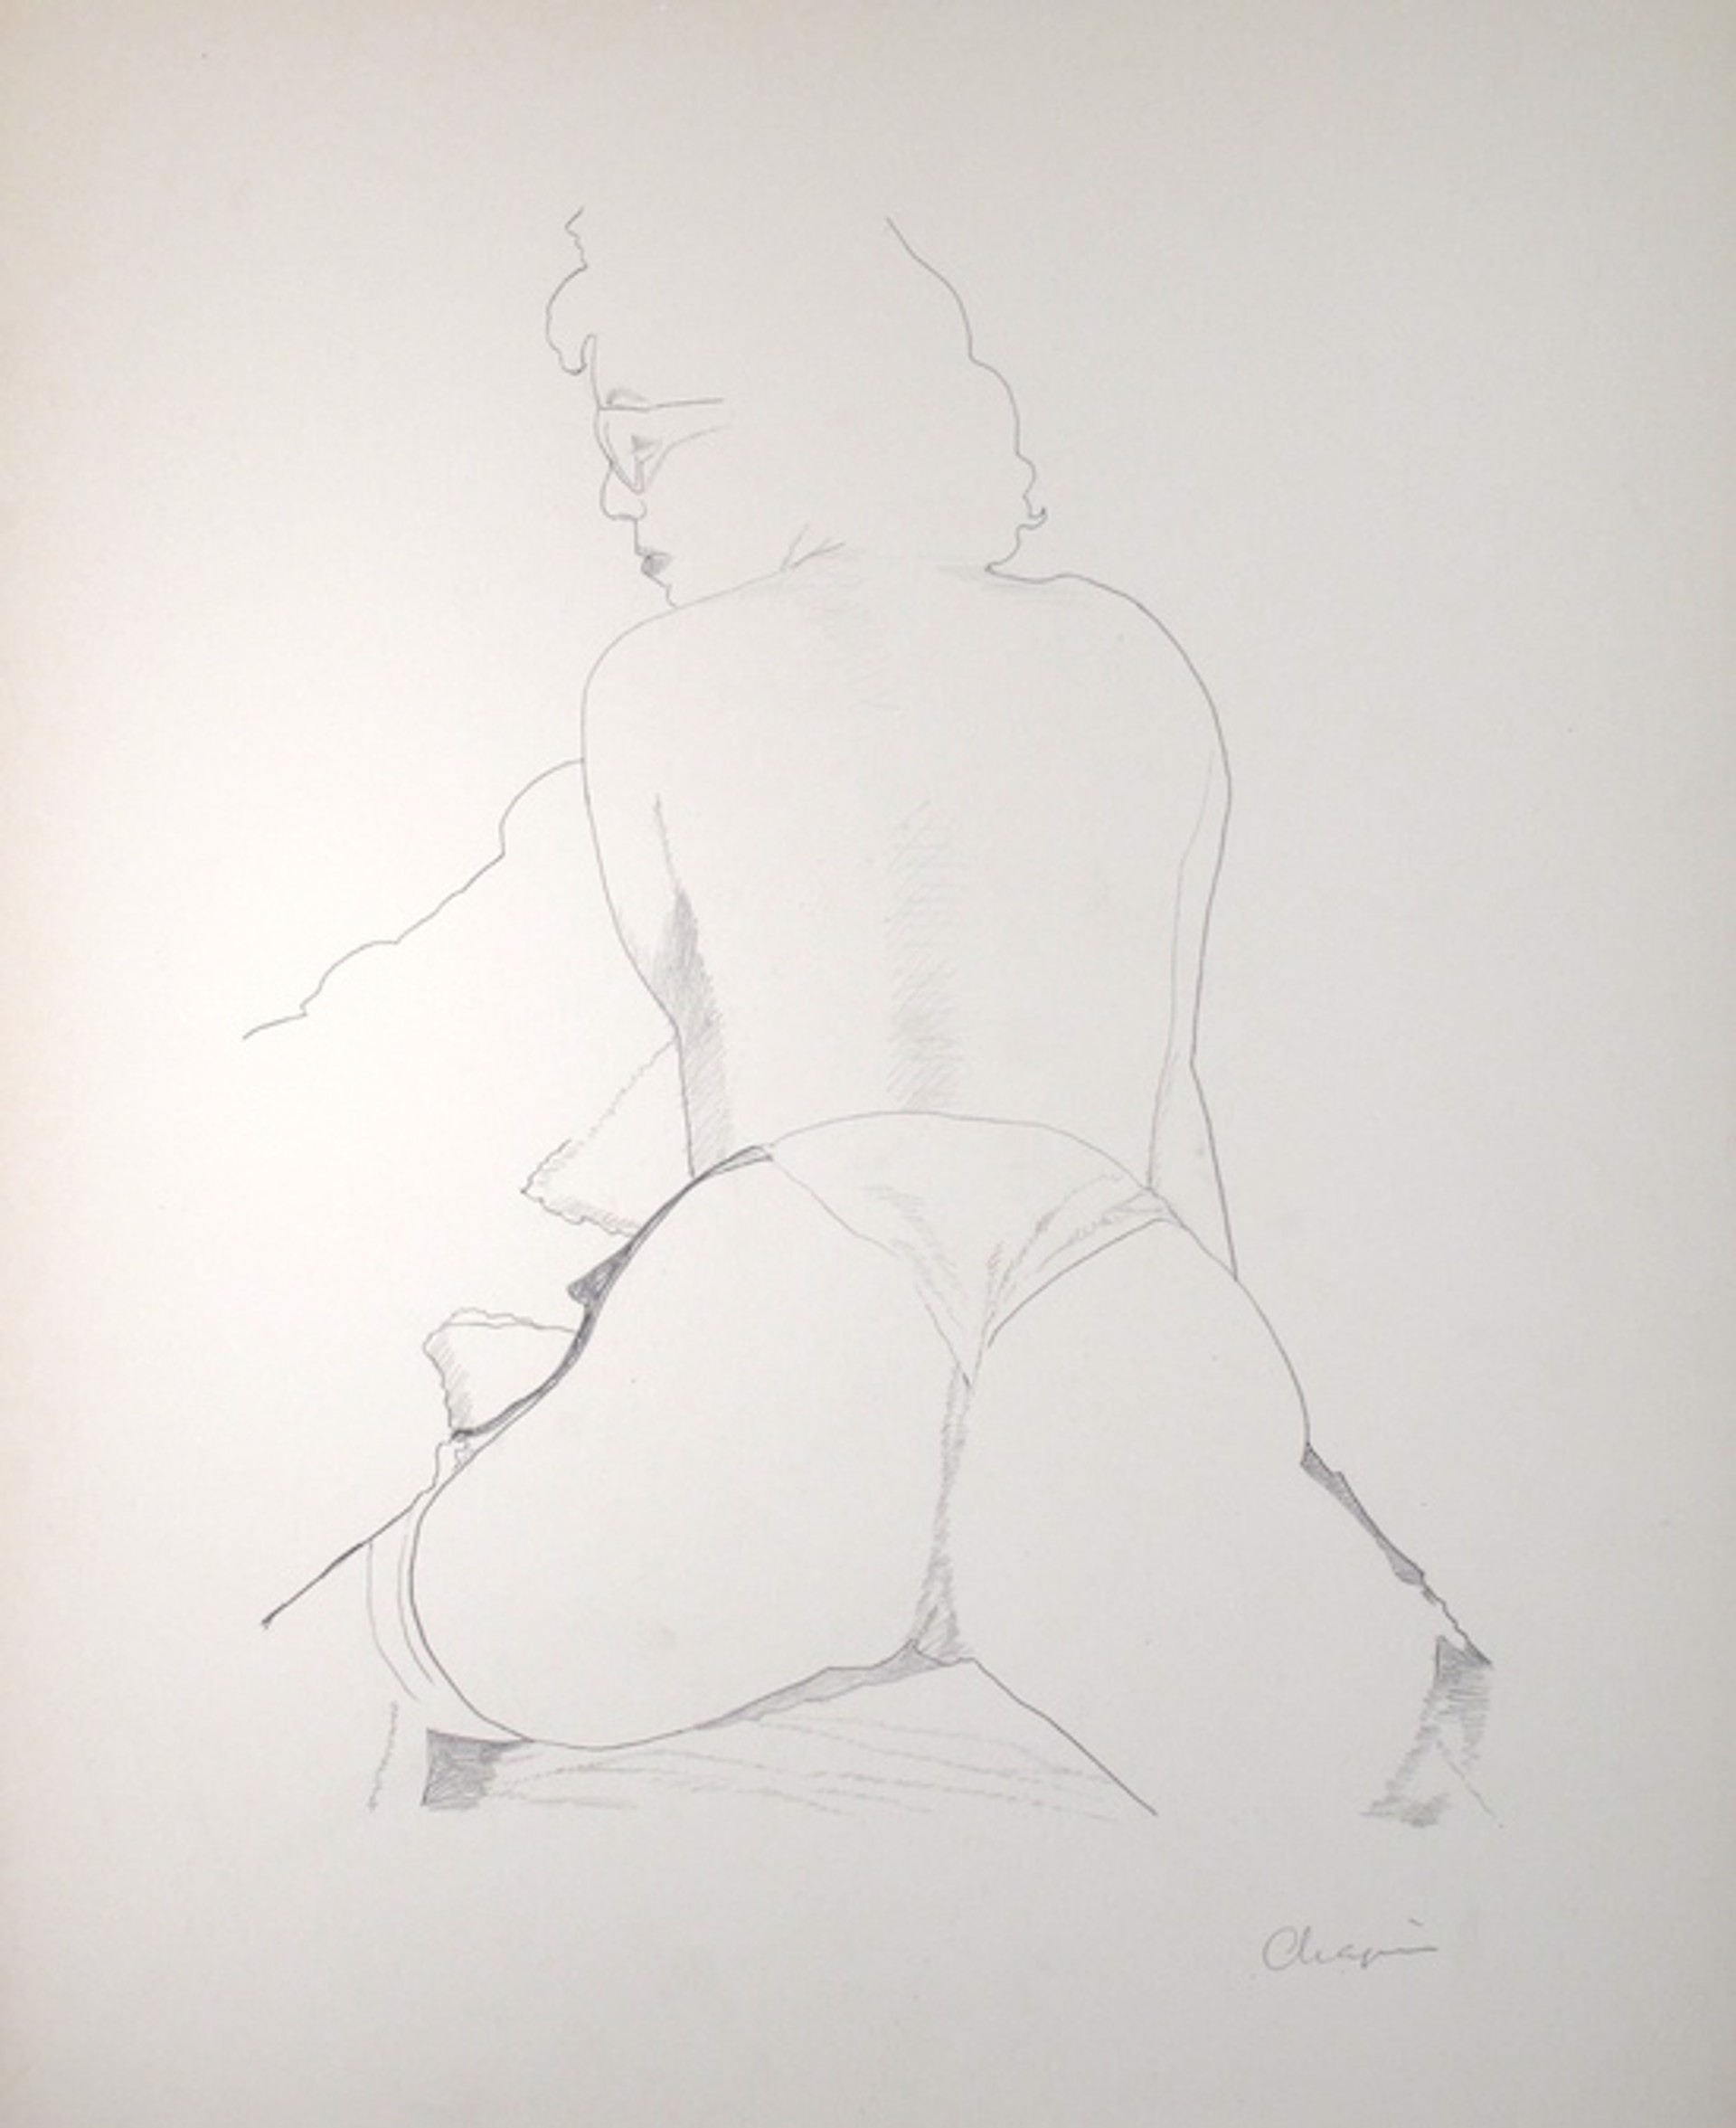 Legs Spread (Rear View) by David Chapin